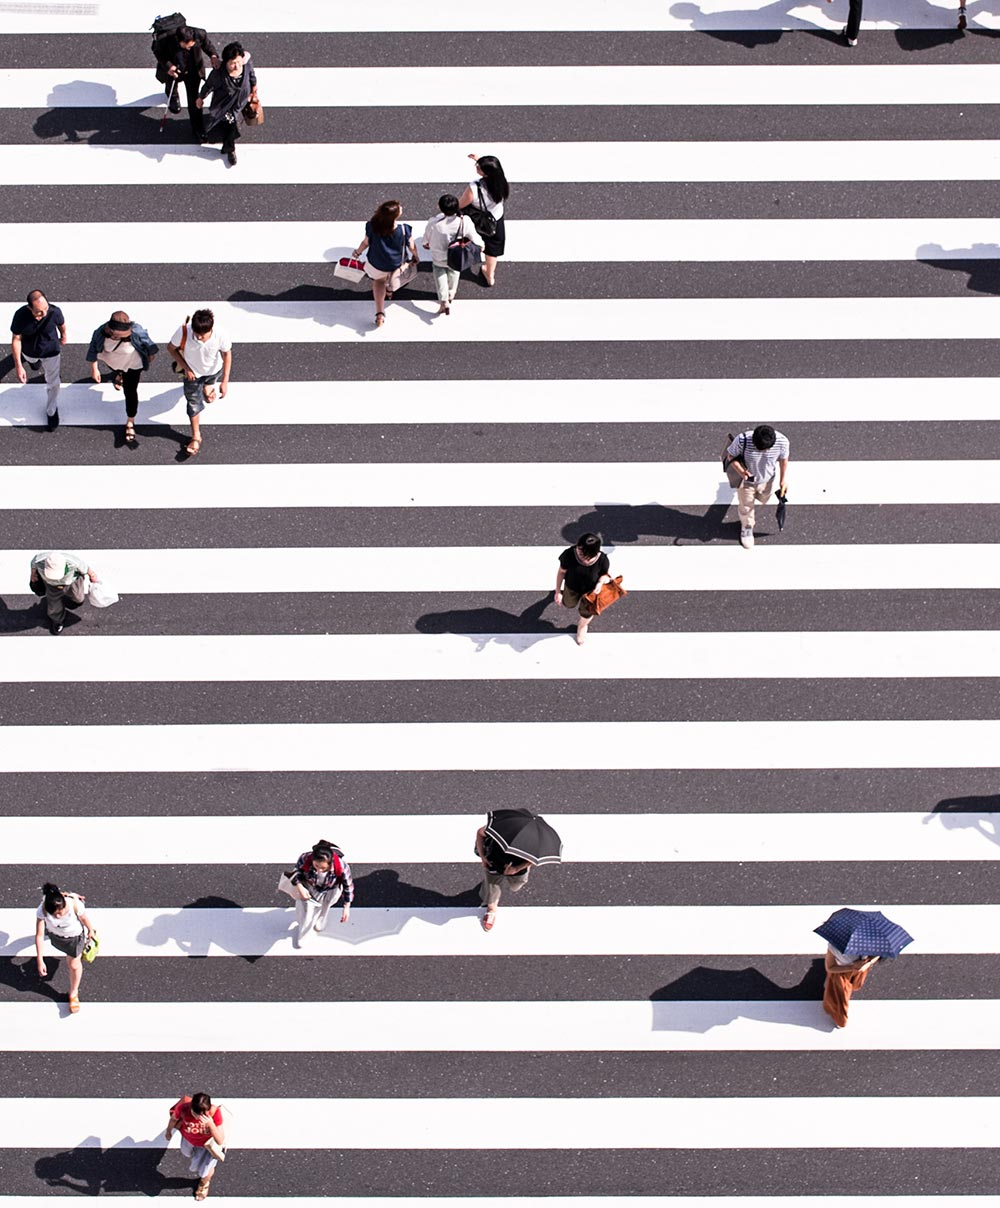 Overhead Image of People Walking on Striped Street